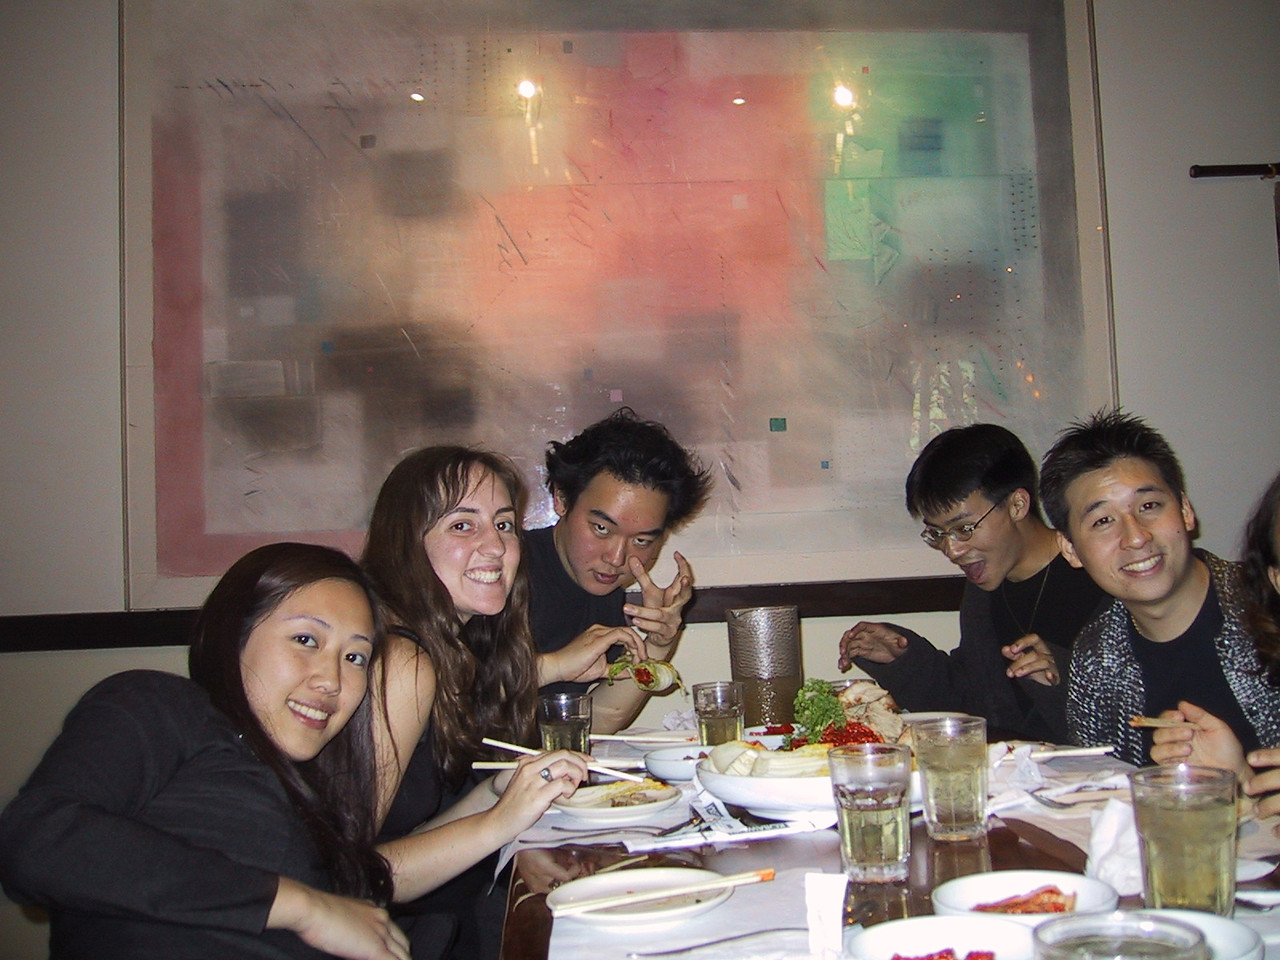 Korean Dinner after K-Town Gig - Other End of the table